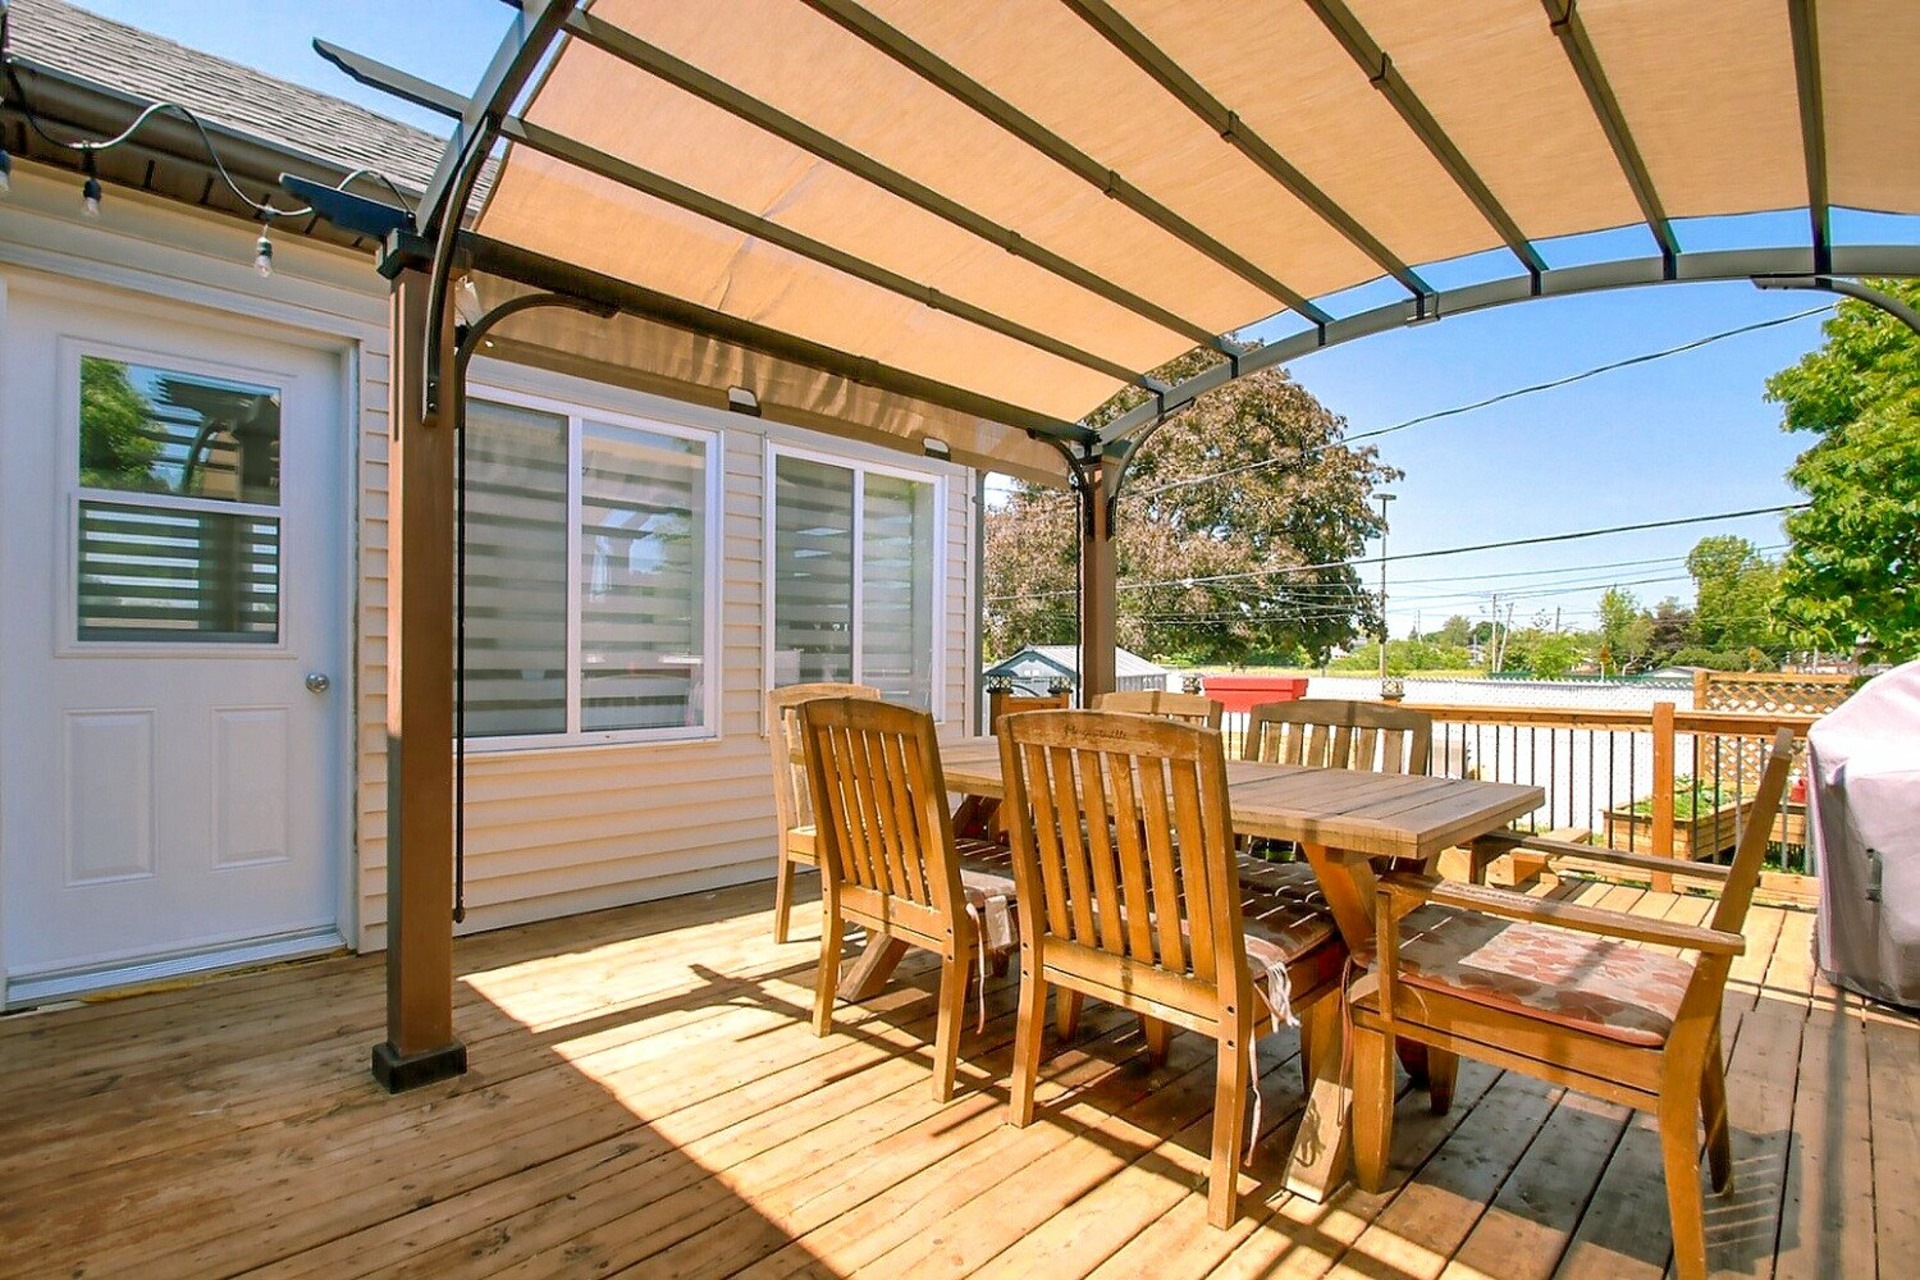 image 5 - House For sale Le Gardeur Repentigny  - 15 rooms